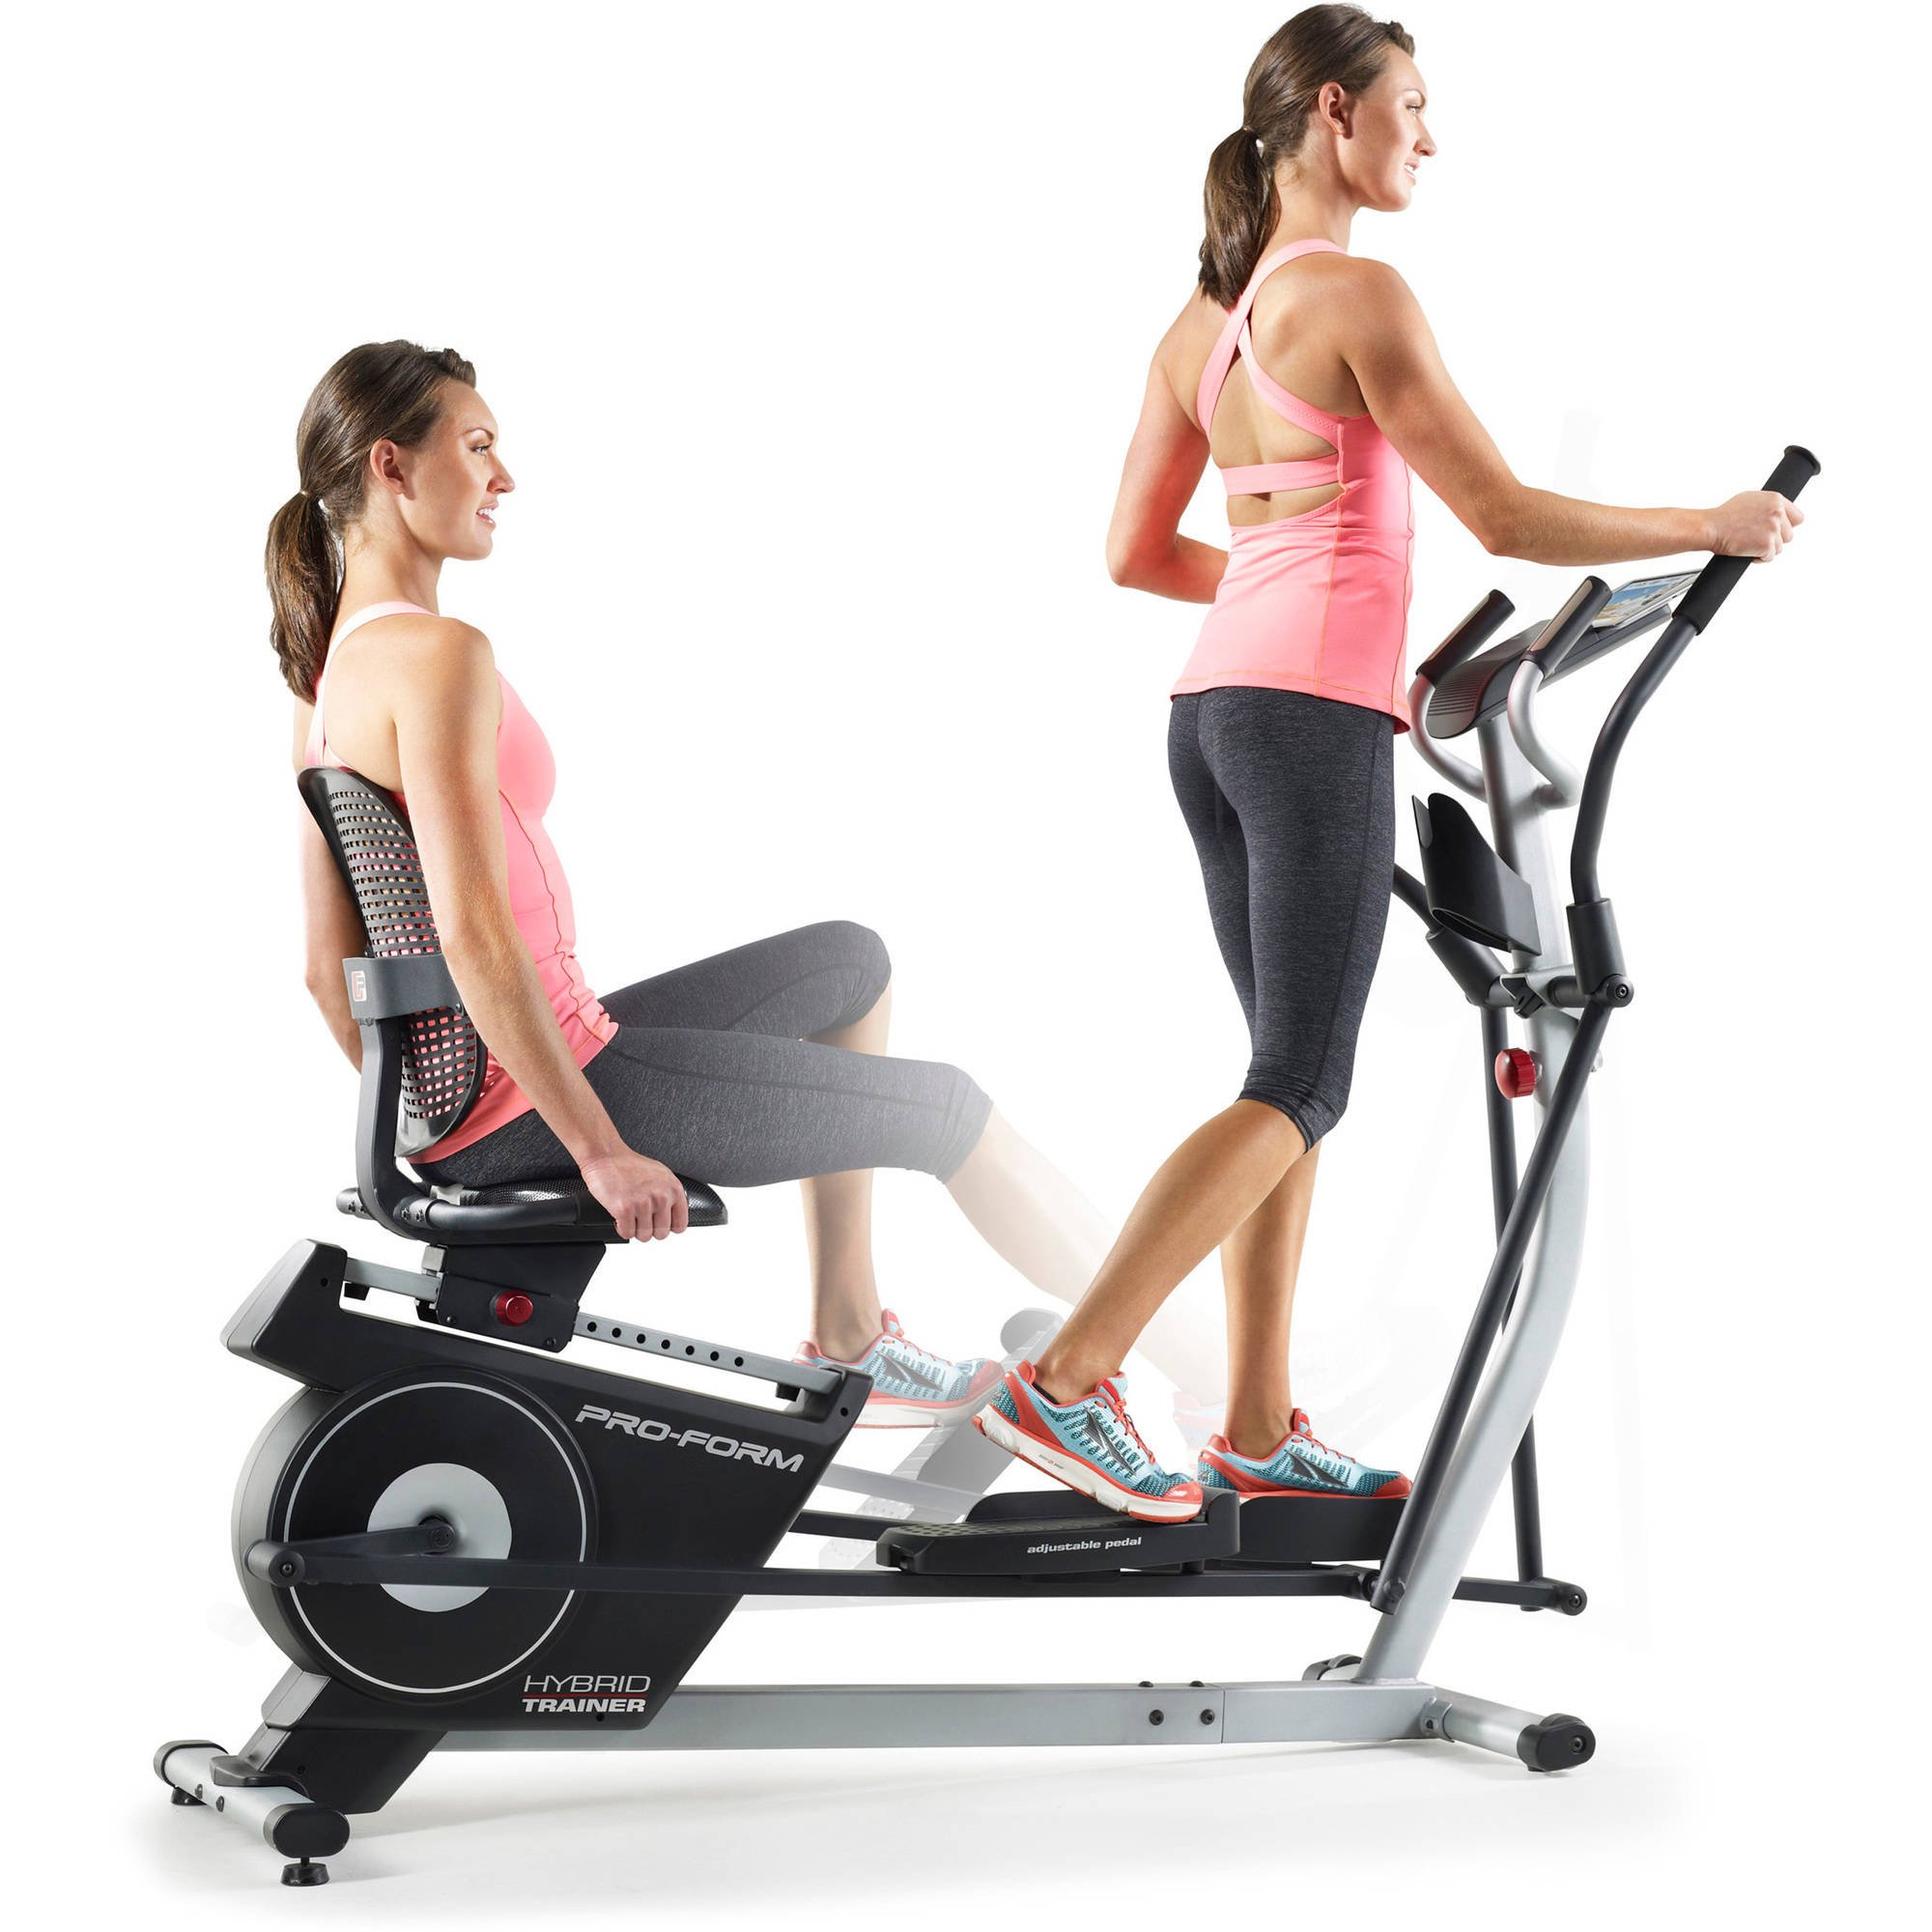 ProForm Hybrid Trainer 2-in-1 Elliptical and Recumbent Bike  sc 1 st  Walmart : reclining elliptical machines - islam-shia.org